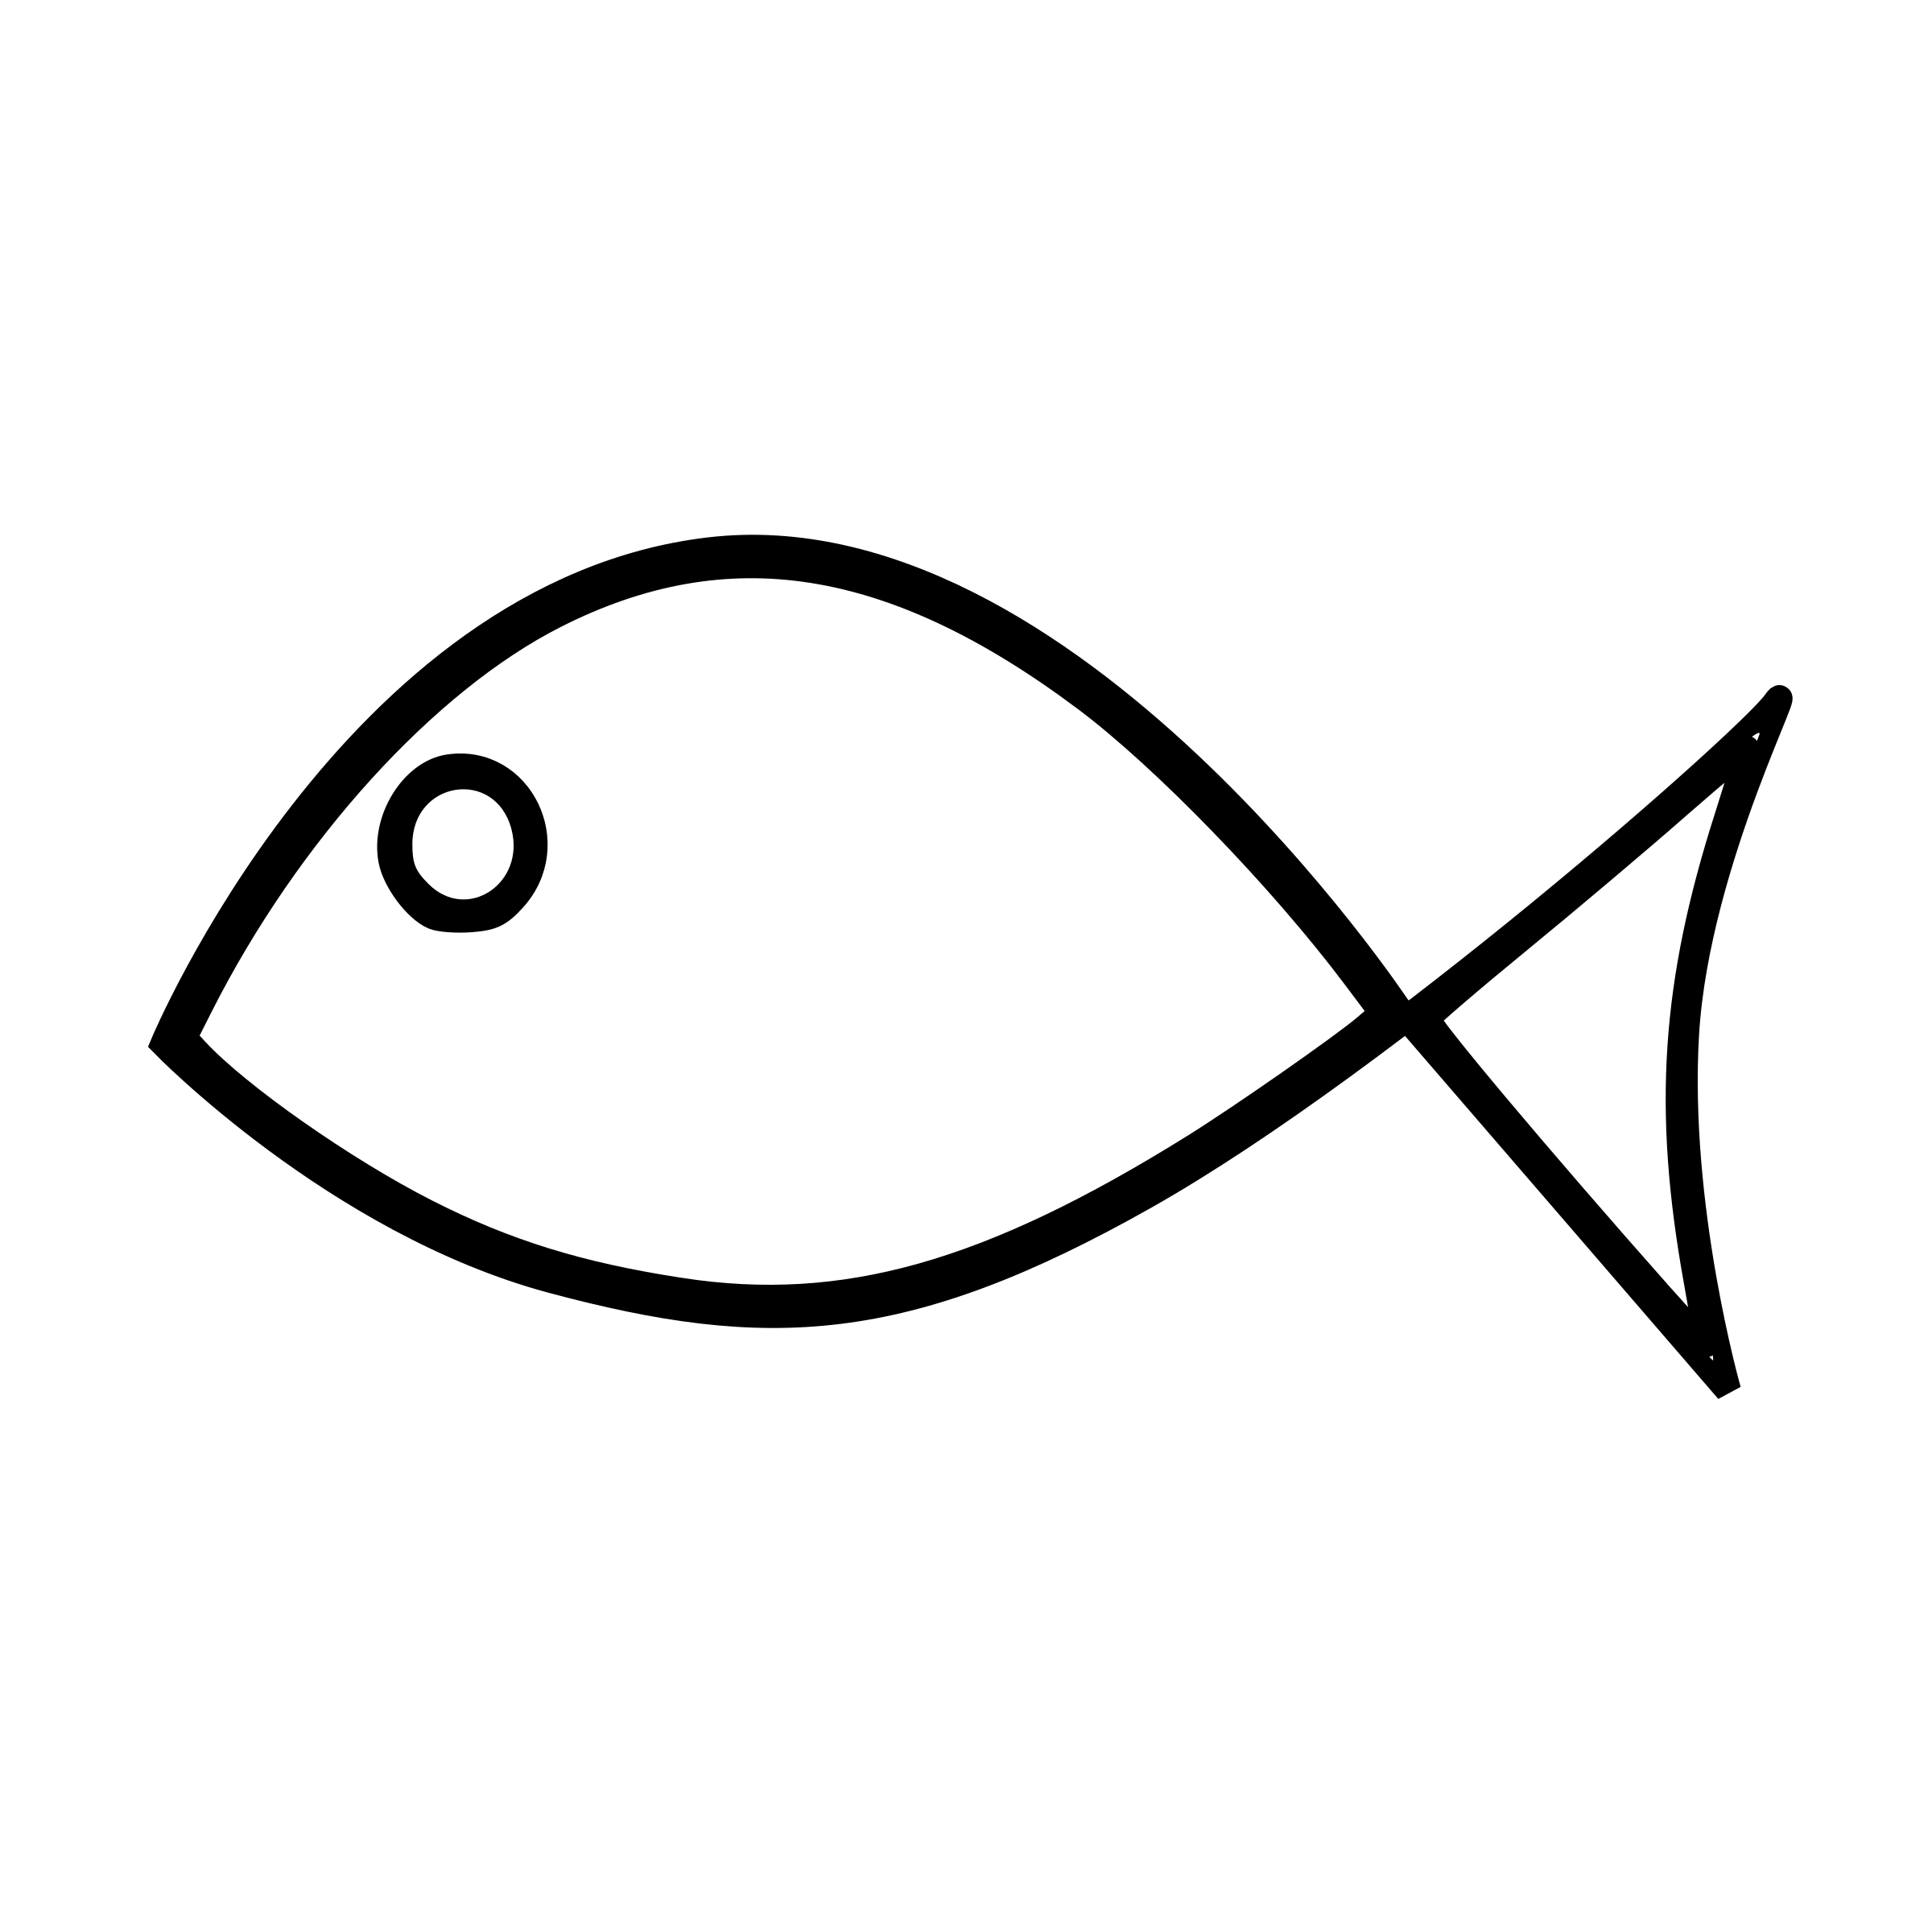 Big image png. Fish with hook in mouth clipart